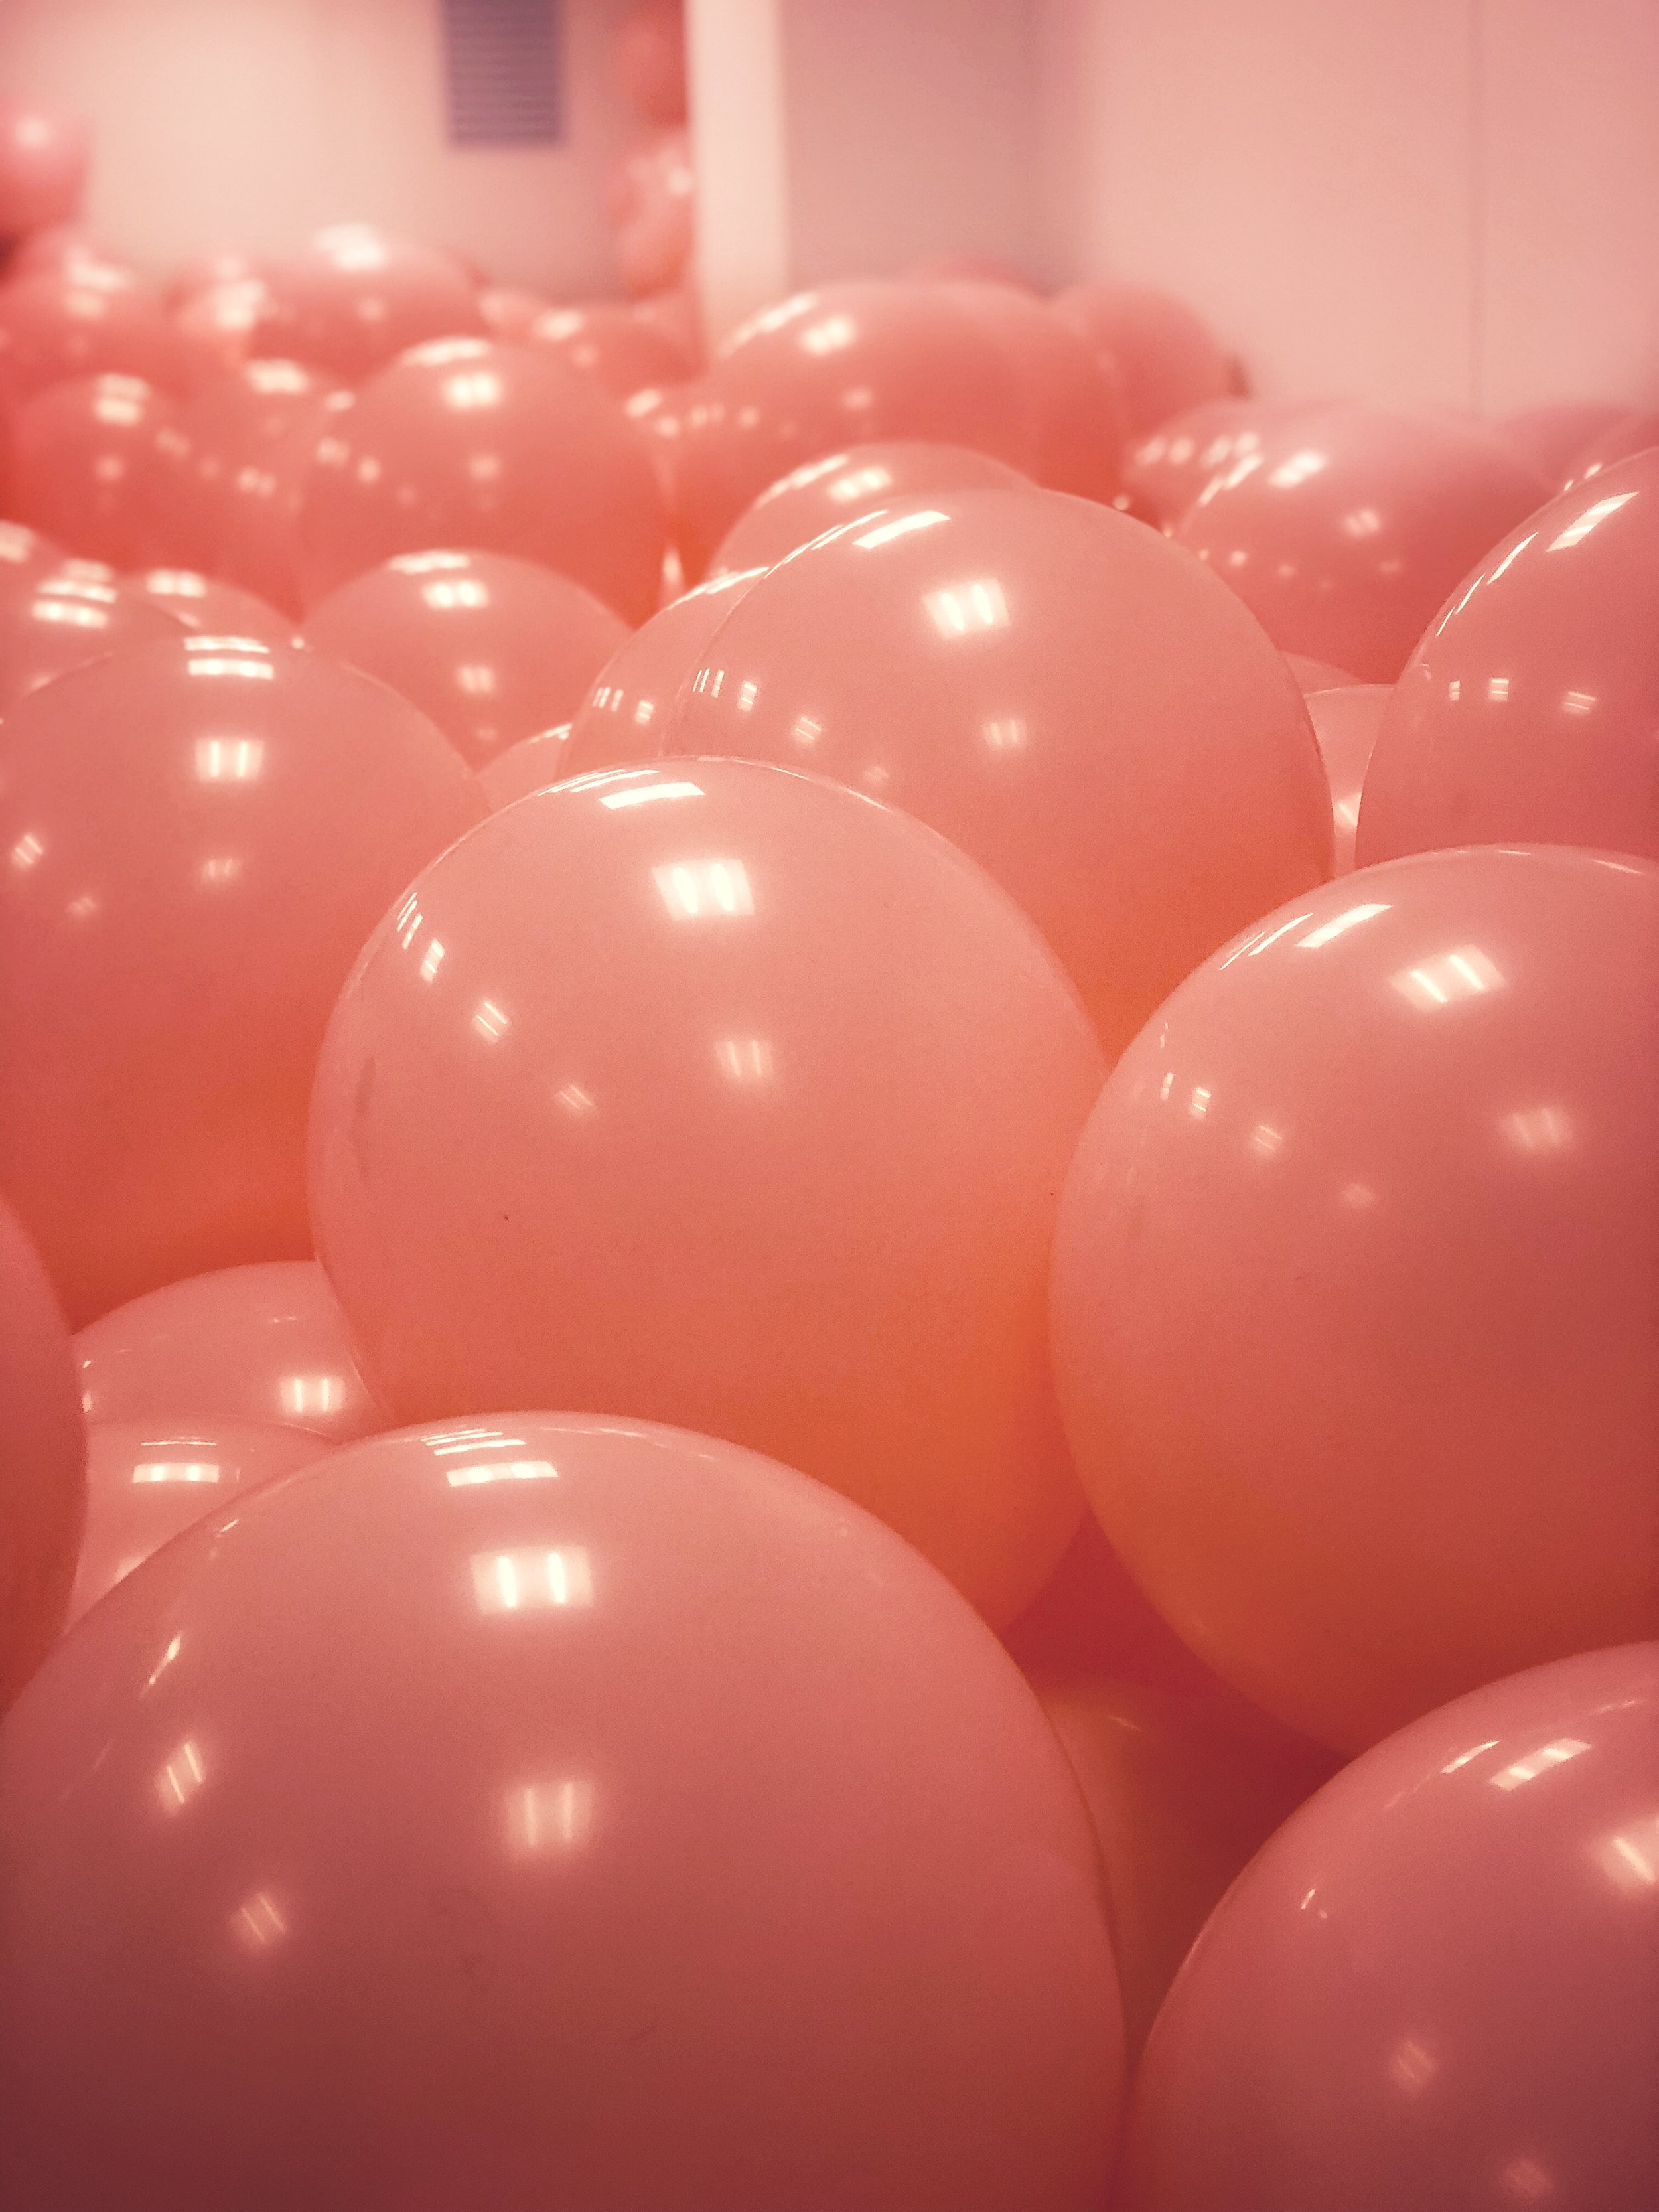 On the agenda for the afternoon was a visit to the  Peabody Essex Museum , which I have not visited before. We were lucky to have caught the Playtime Exhibit in its final days (it was closing up the next day). One of the highlights of the exhibit was the pink balloons room. Literally a room filled with pink balloons. I felt like such a little kid wading through the balloons and trying to gracefully exit the room without letting any of the balloons escape with me! There was another room with these colorful spinny things (yes, I'm being real technical here) that were pretty cool too. It was a very interesting exhibit.